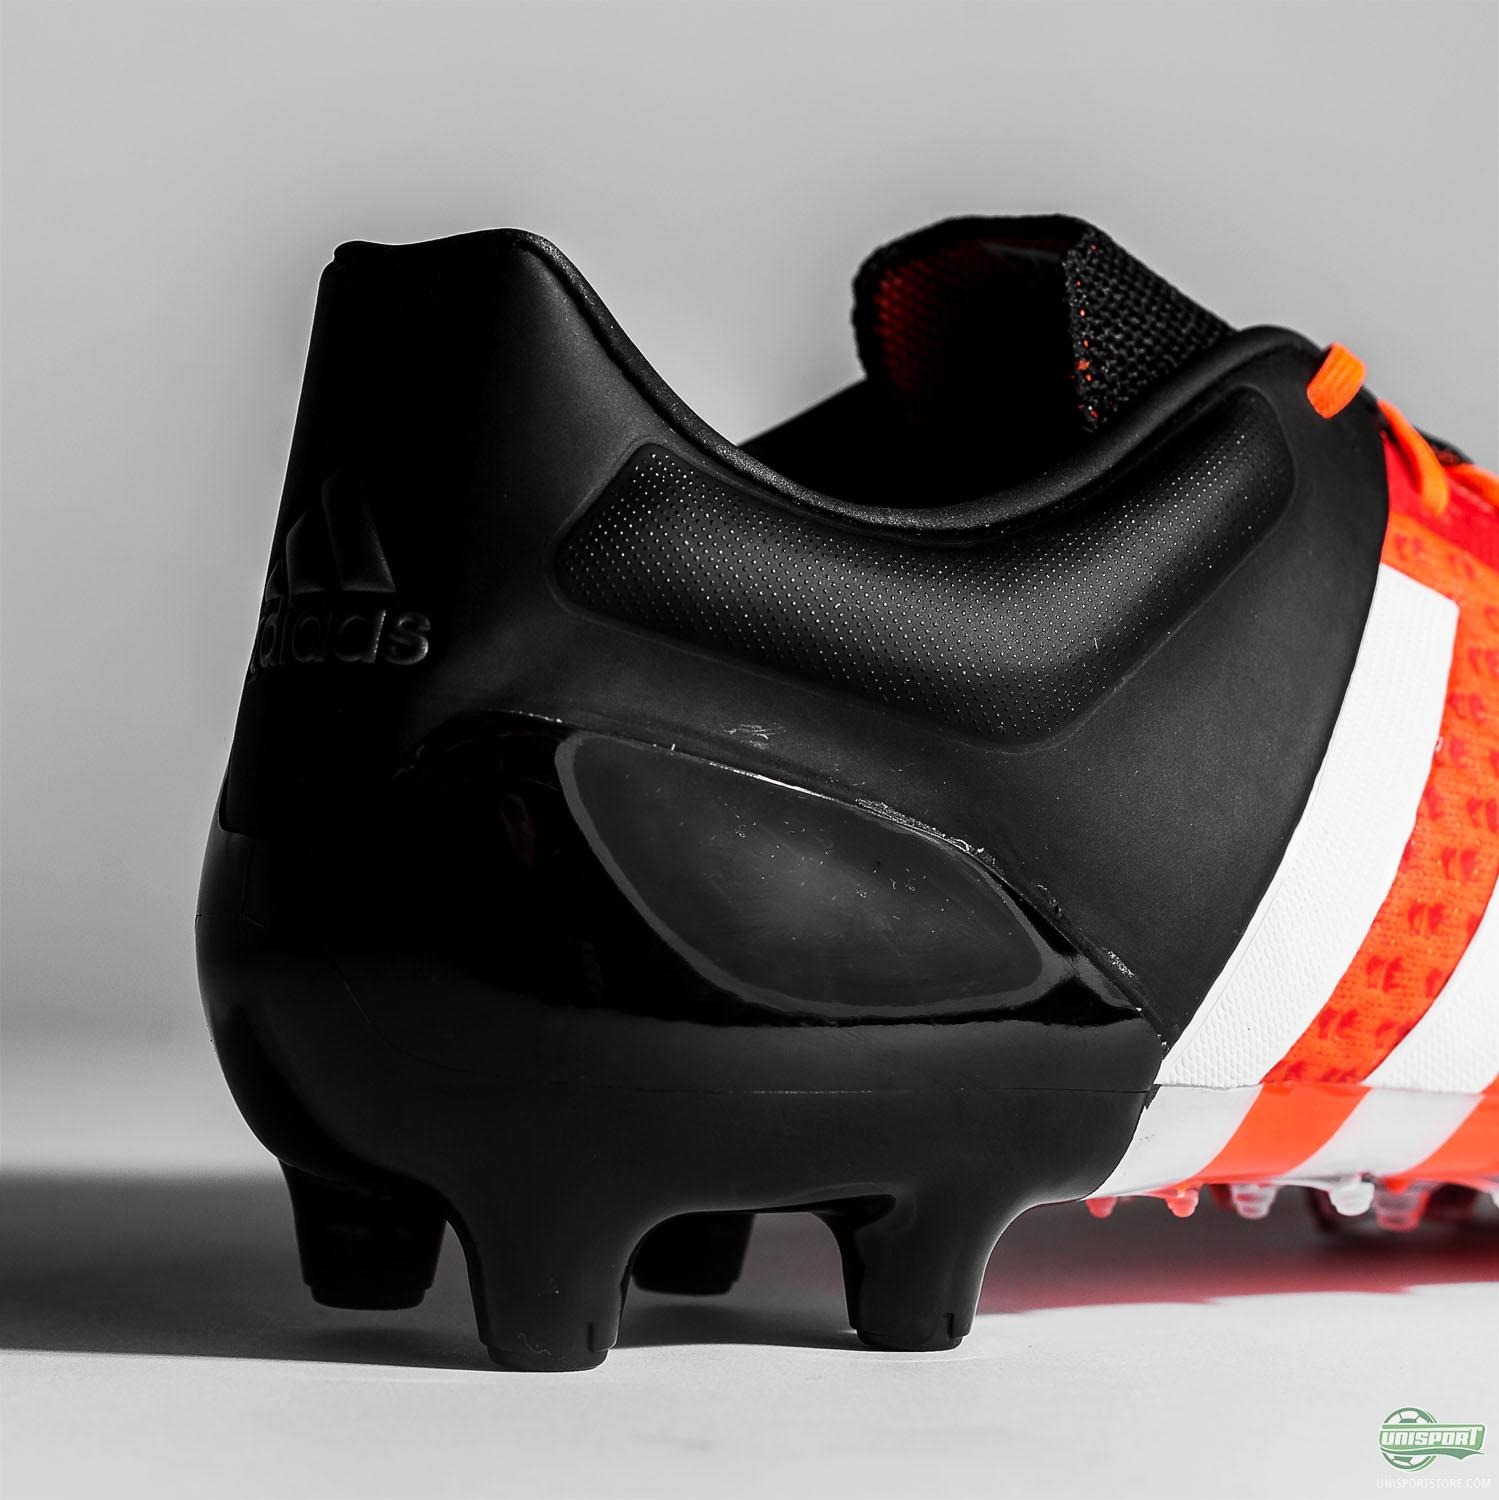 c37e47f7dc2e The X15 and Ace15 Primeknit boots and the Primeknit 2.0 are probably the  best example of the evolution of the boots